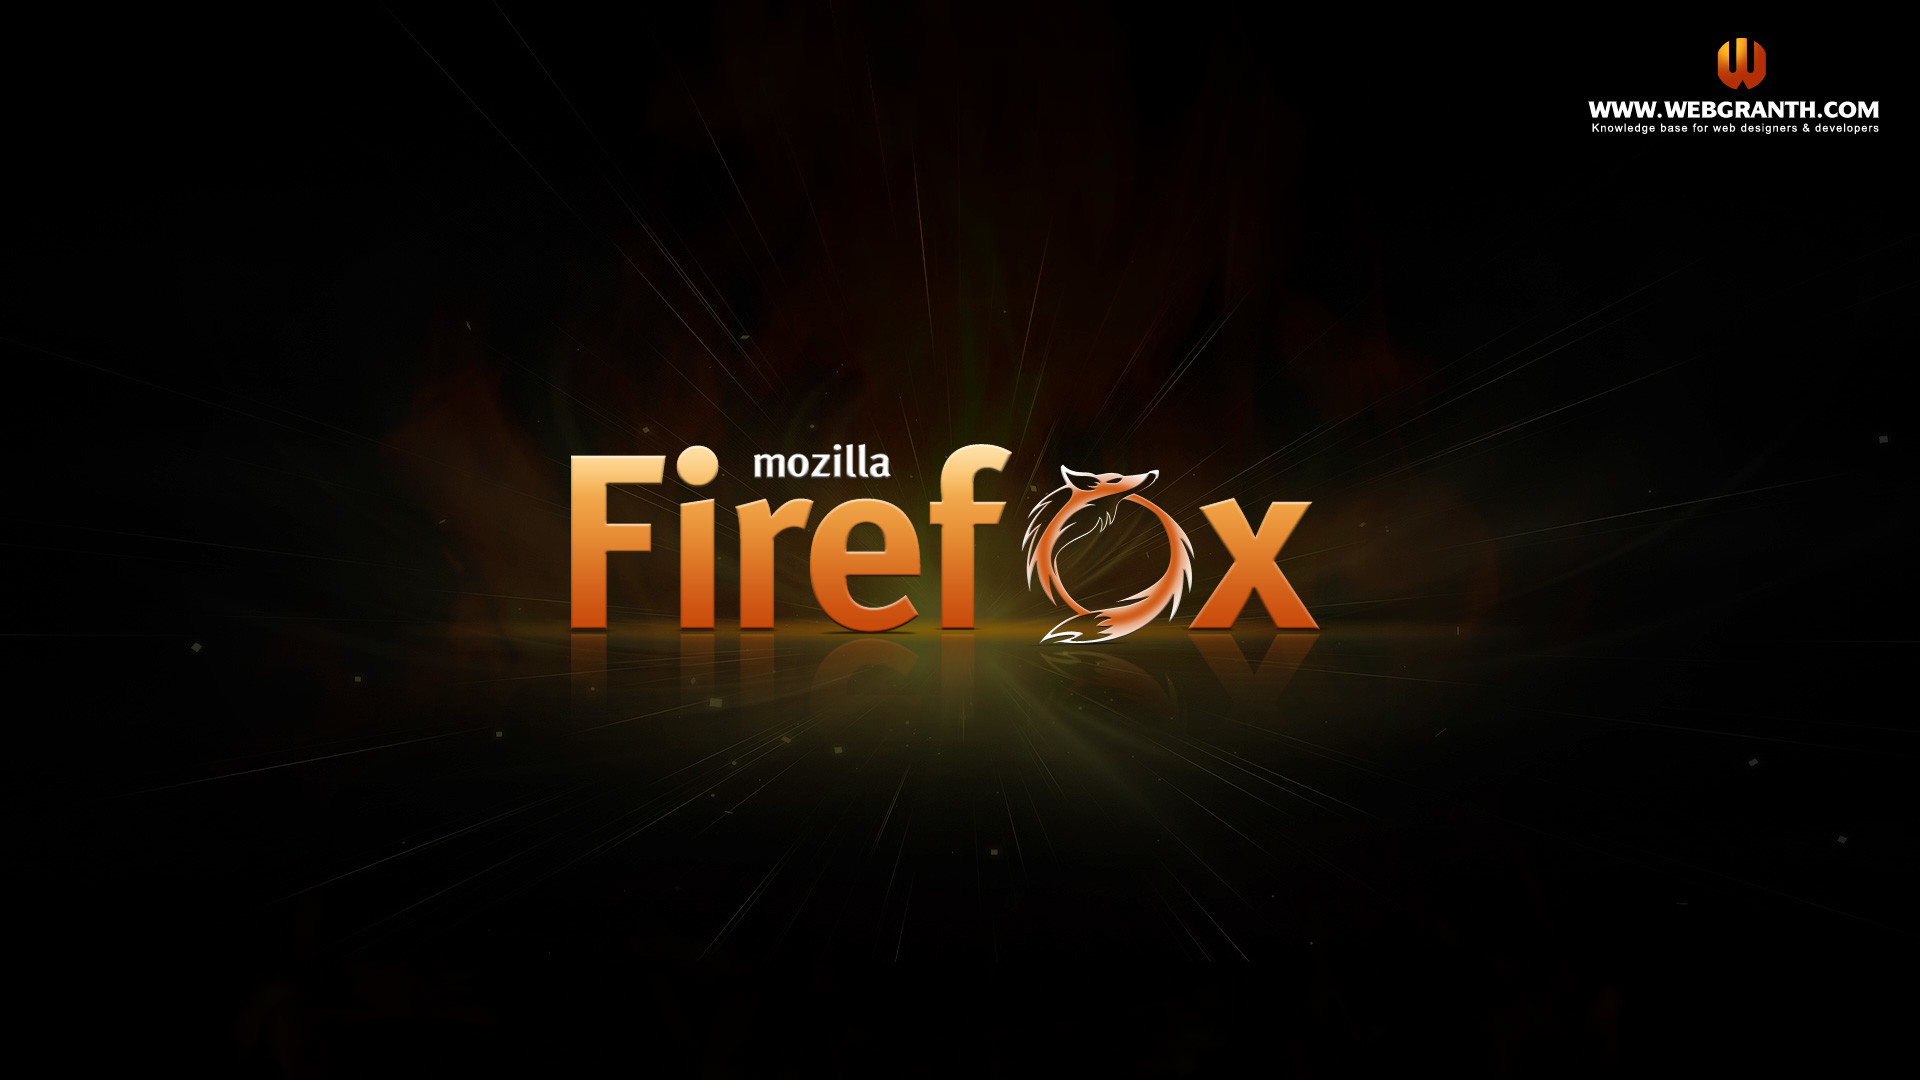 1920x1080 HD Mozilla Firefox wallpaper 2013 @webgranth